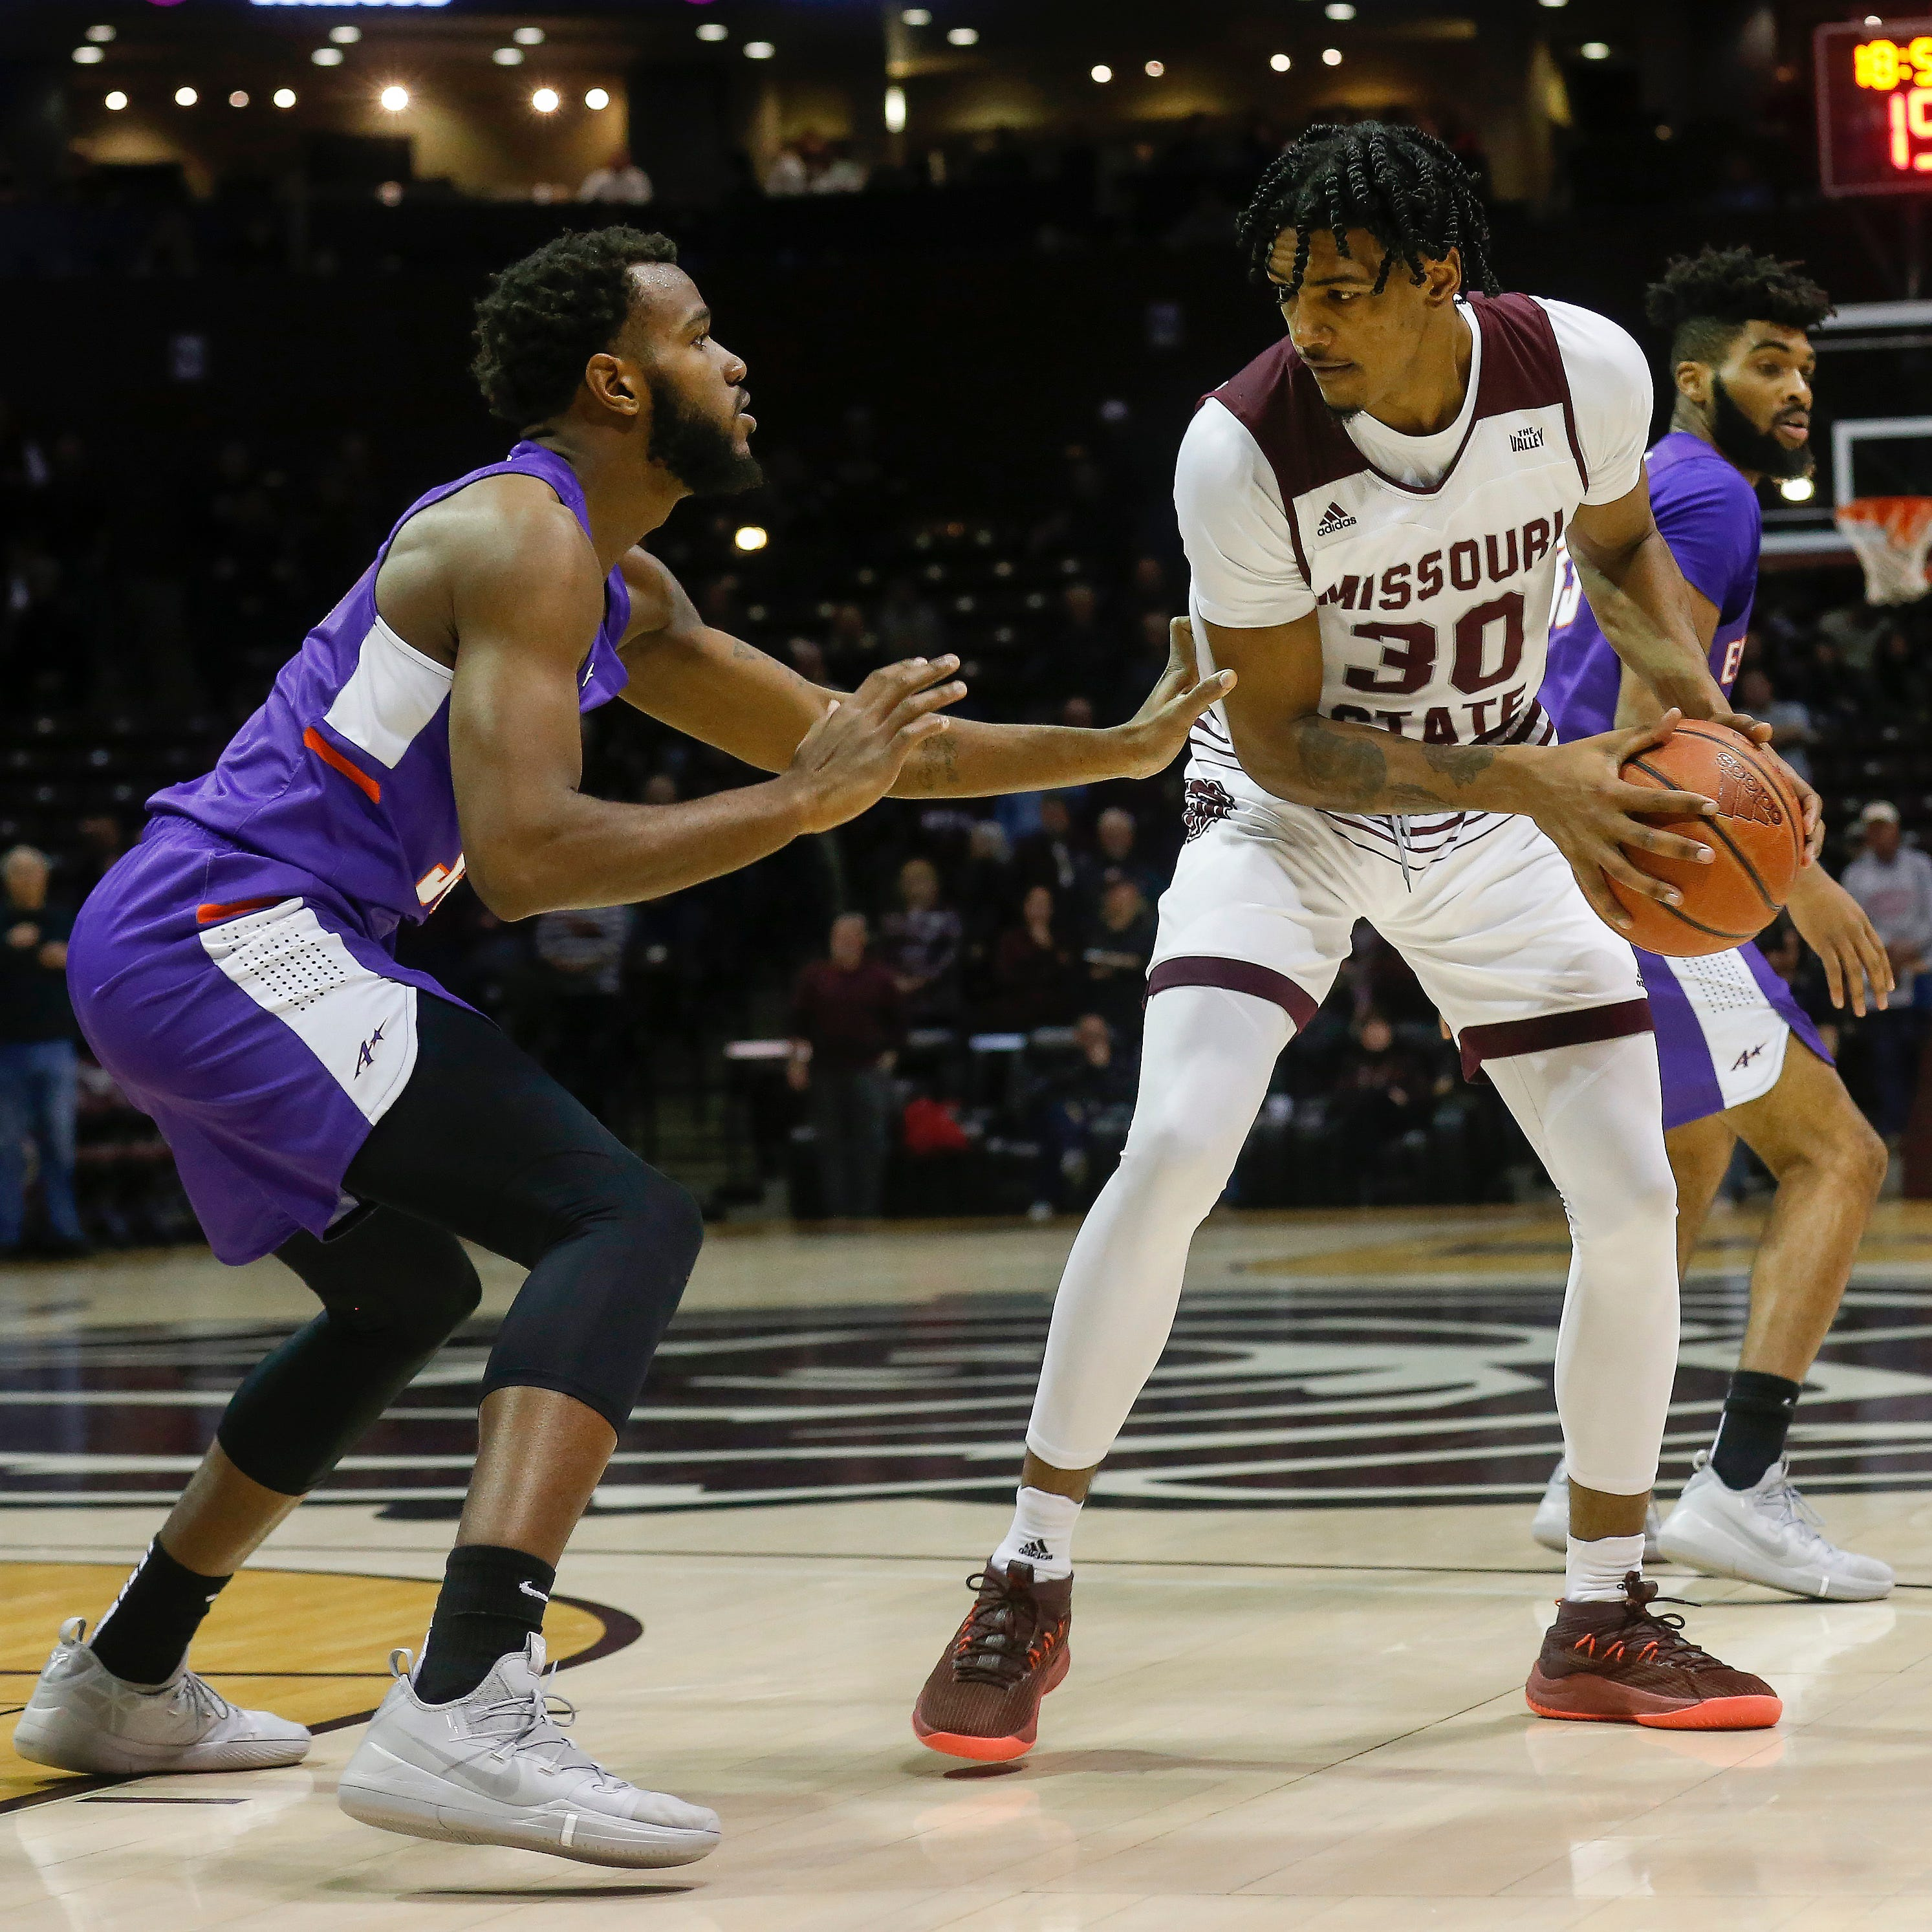 The unlikeliest of heroes guided Evansville basketball to its first road win of the season